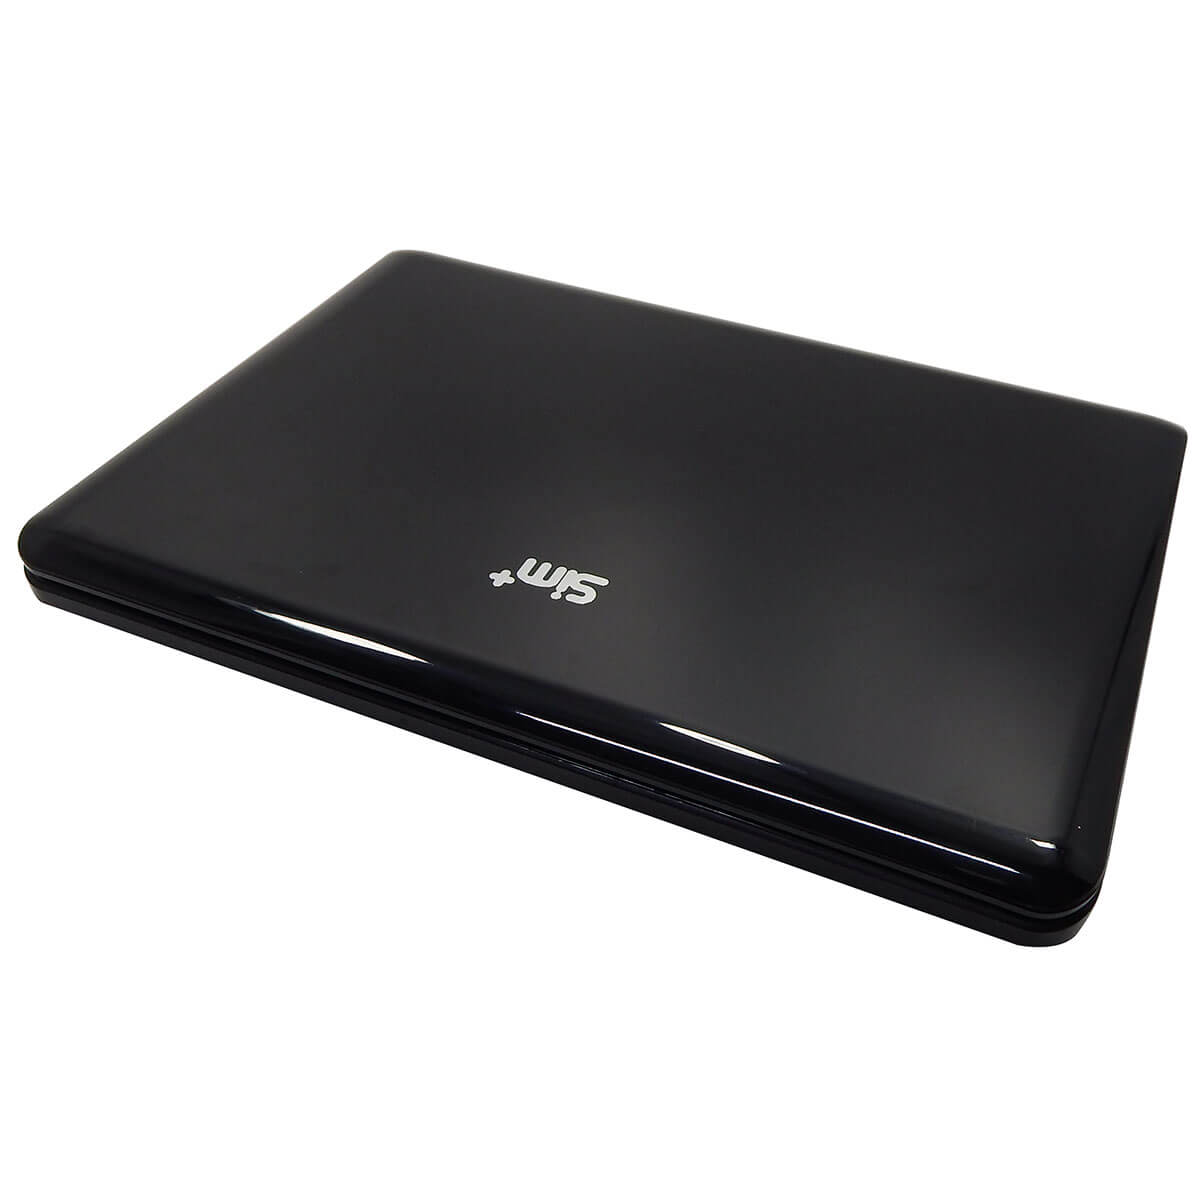 NOTEBOOK Positivo Sim I5-2450m 6Gb 500Gb Hd Dvd - Seminovo